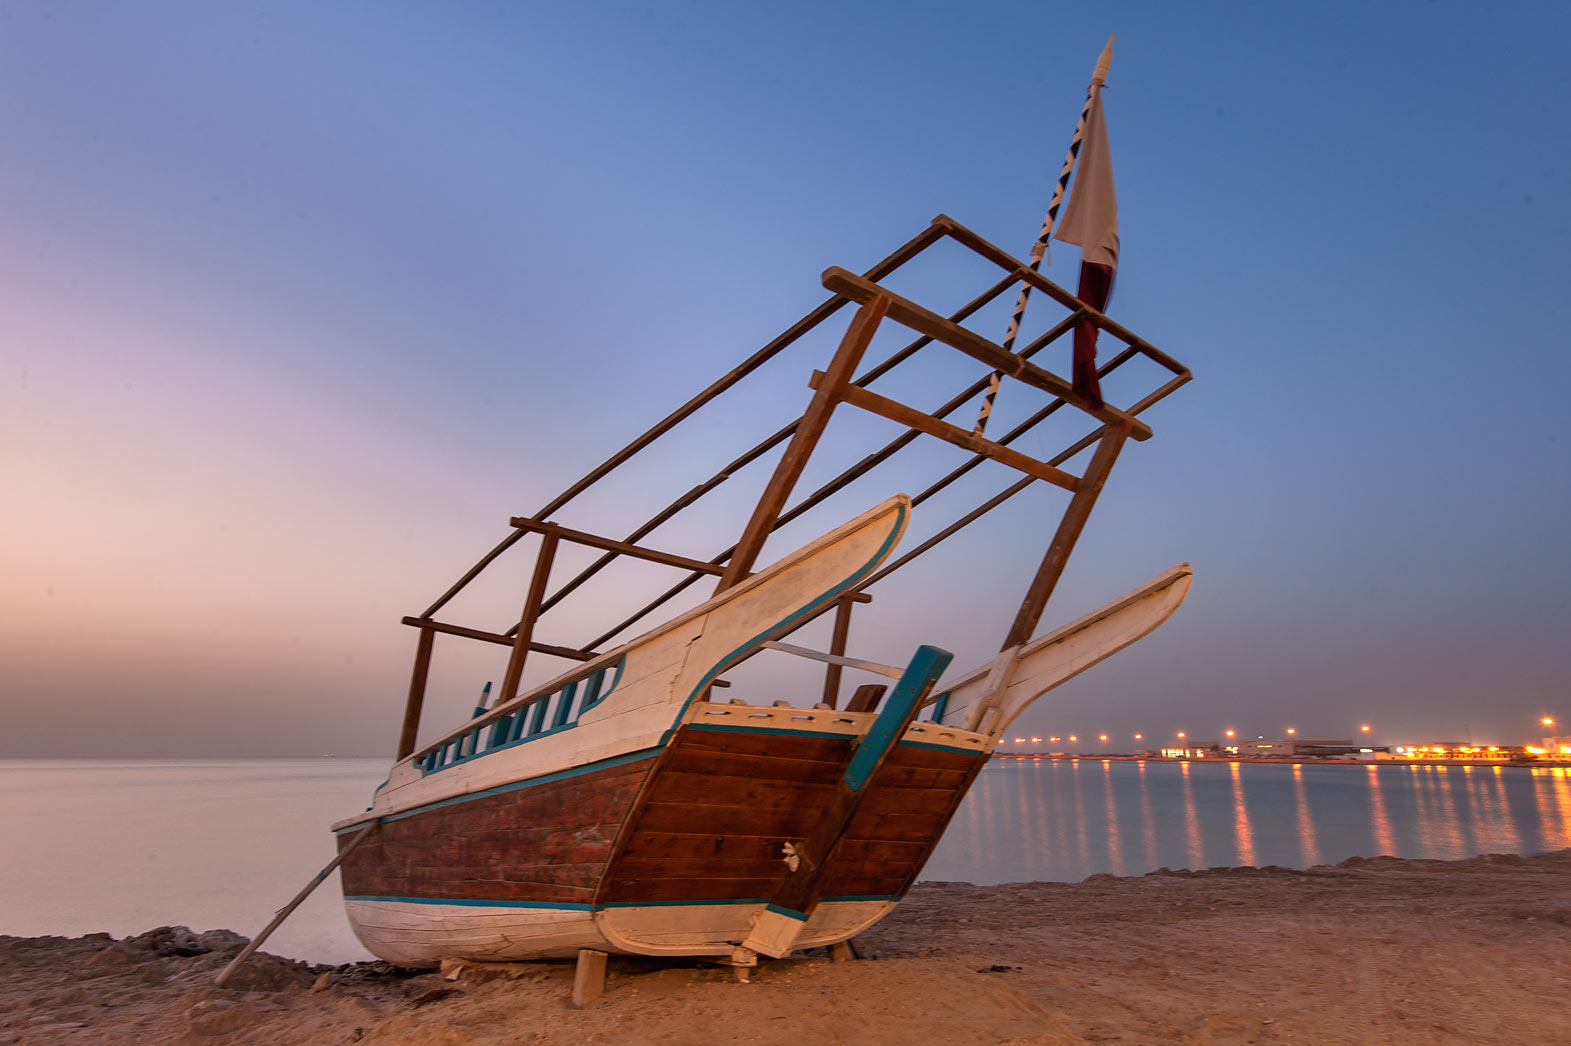 Dhow (fishing boat) on a beach at morning dusk in...Souq Waqif in Al Wakrah). Qatar